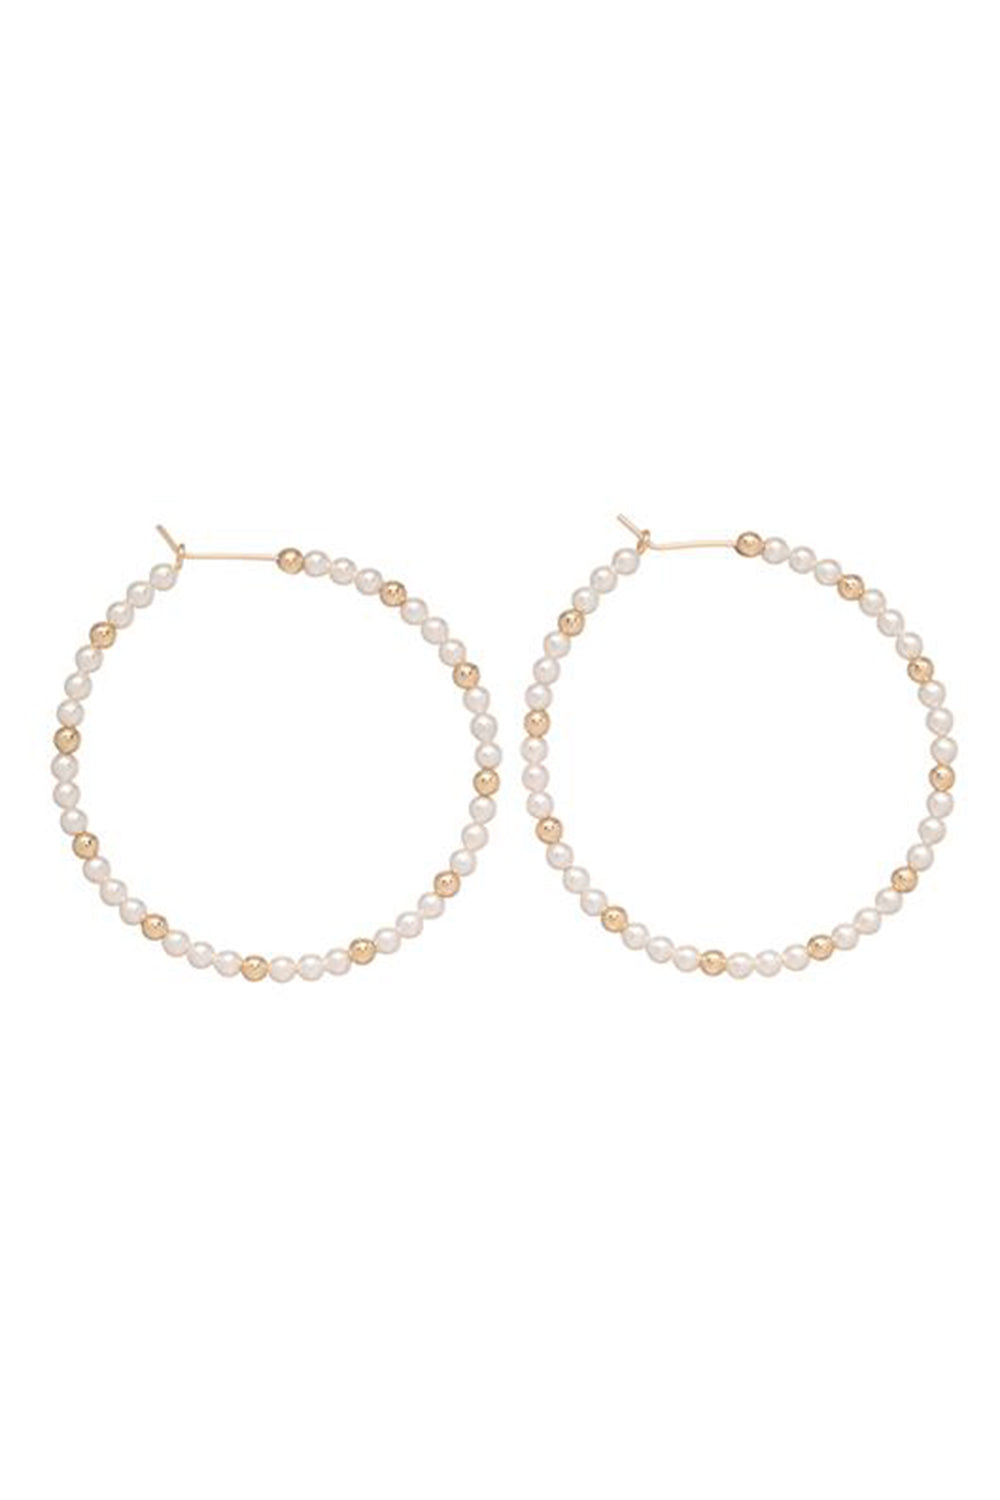 EN Sincerity Hoop Earring - Pearl